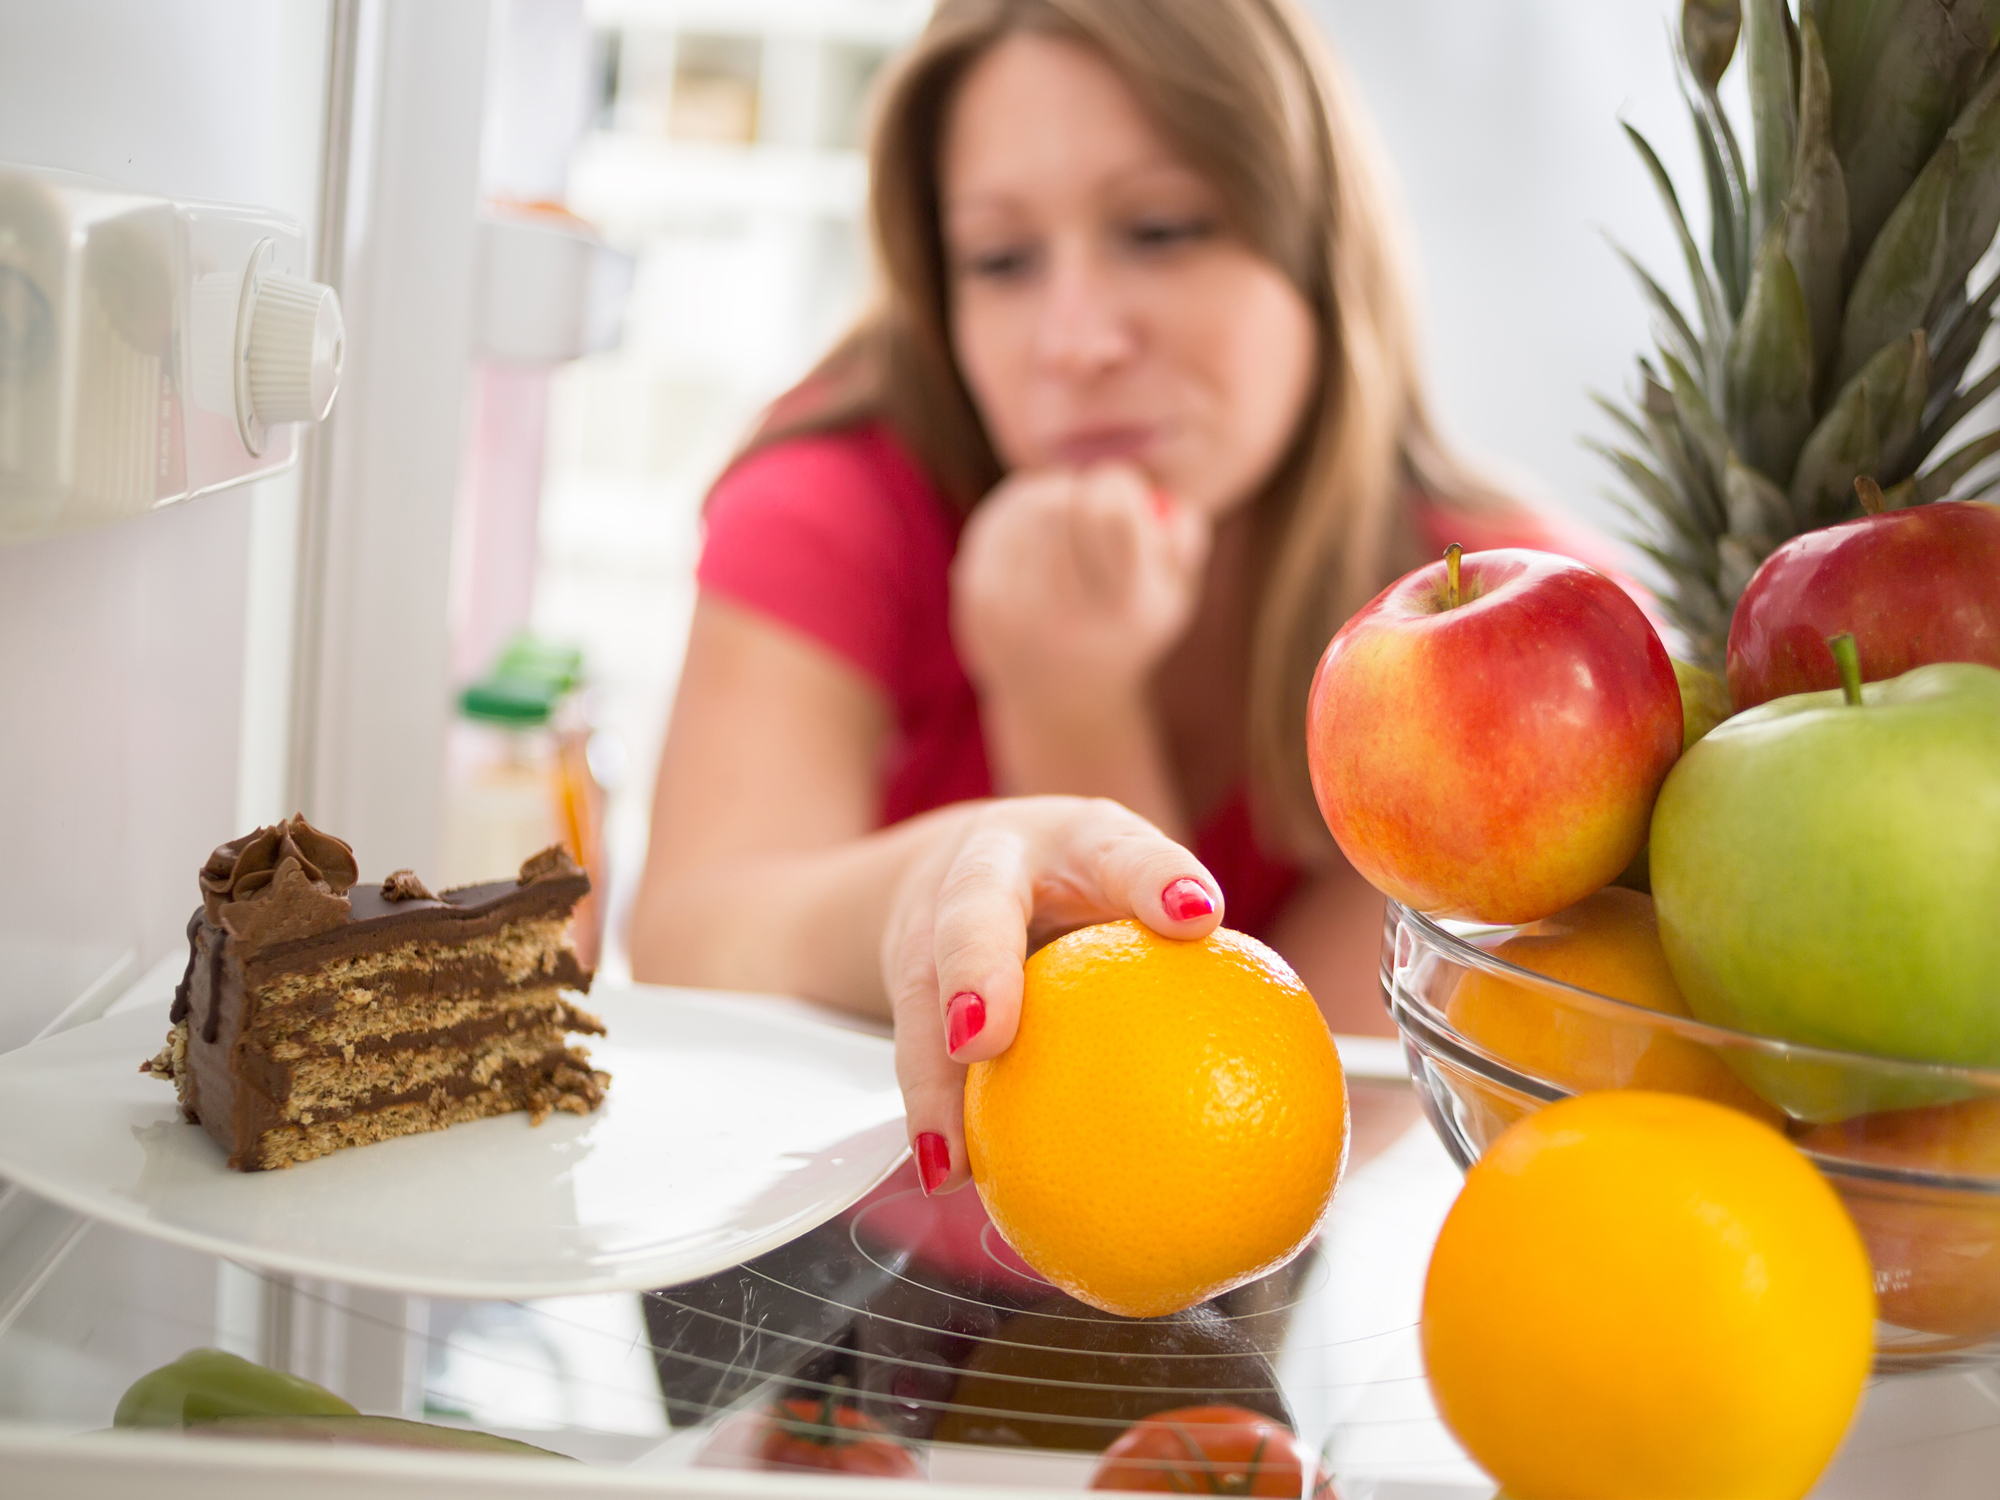 Woman looking at a piece of cake while reaching to grab a fruit instead